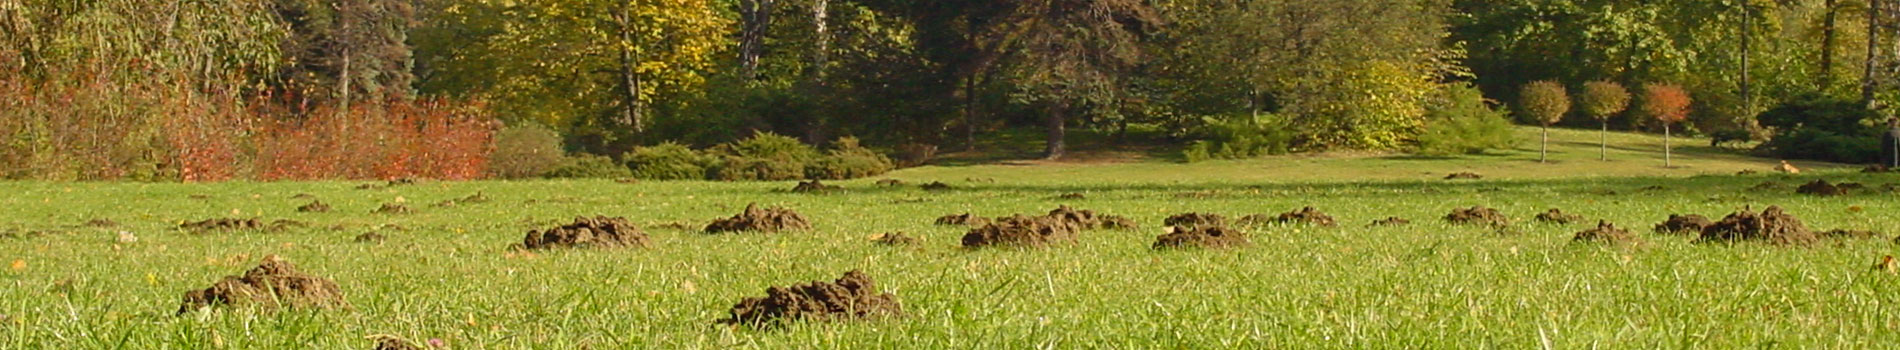 Image of a field of mole hills. A common pest control problem.